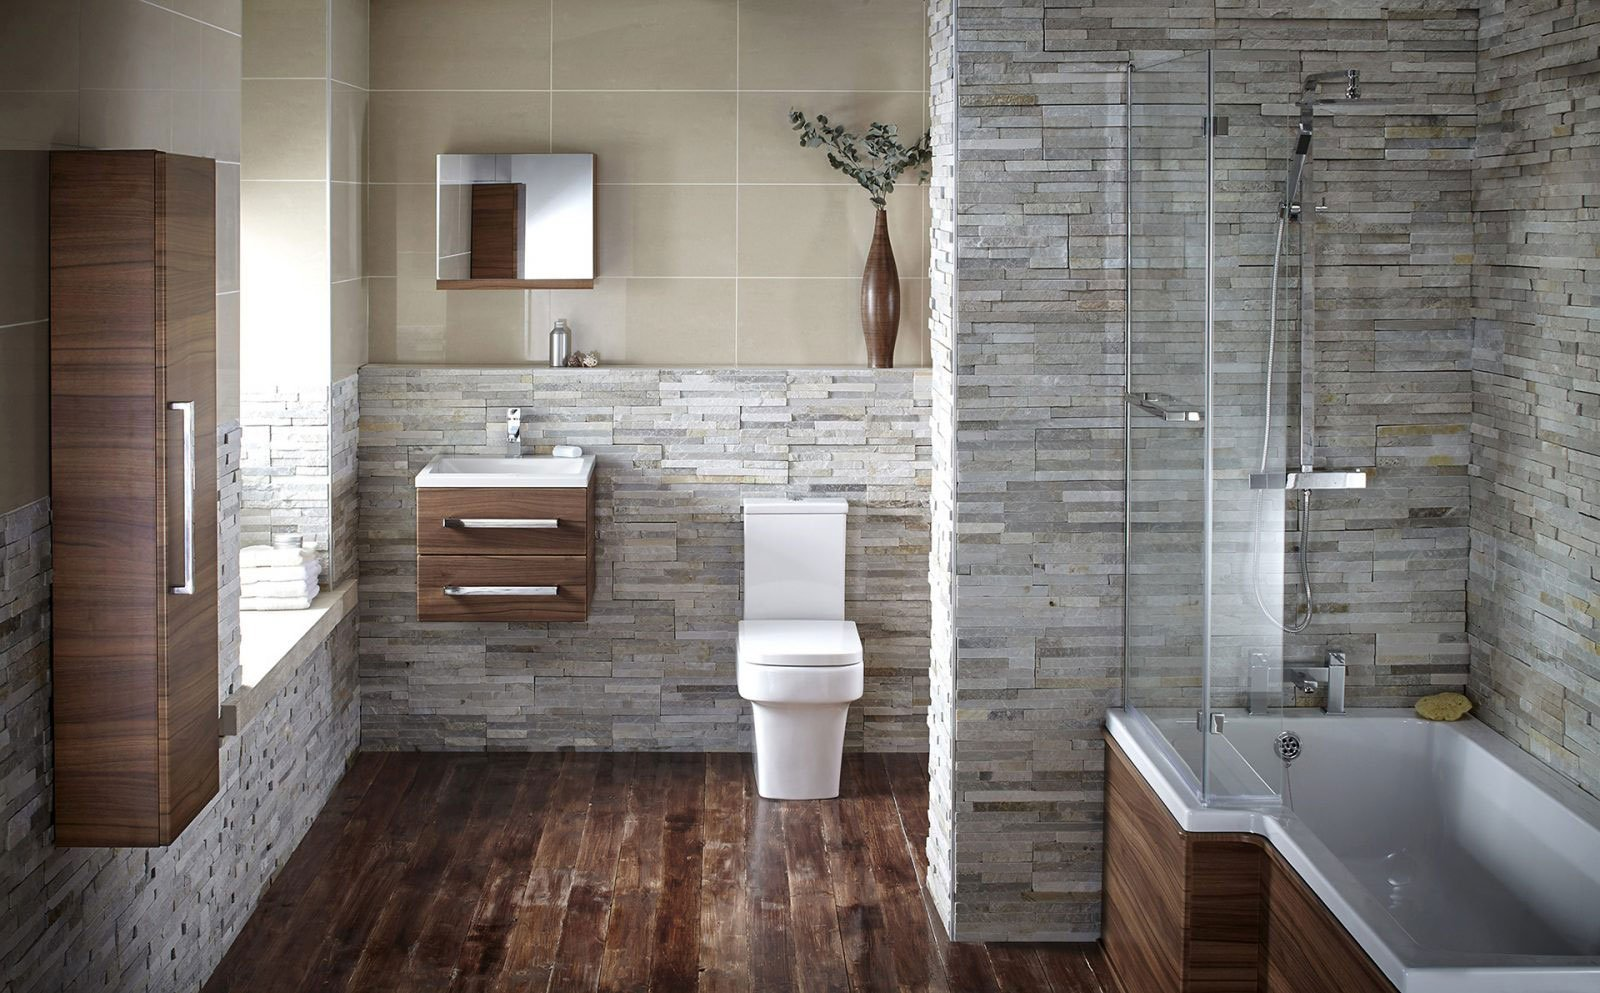 THE FULL BATHROOM SOLUTION